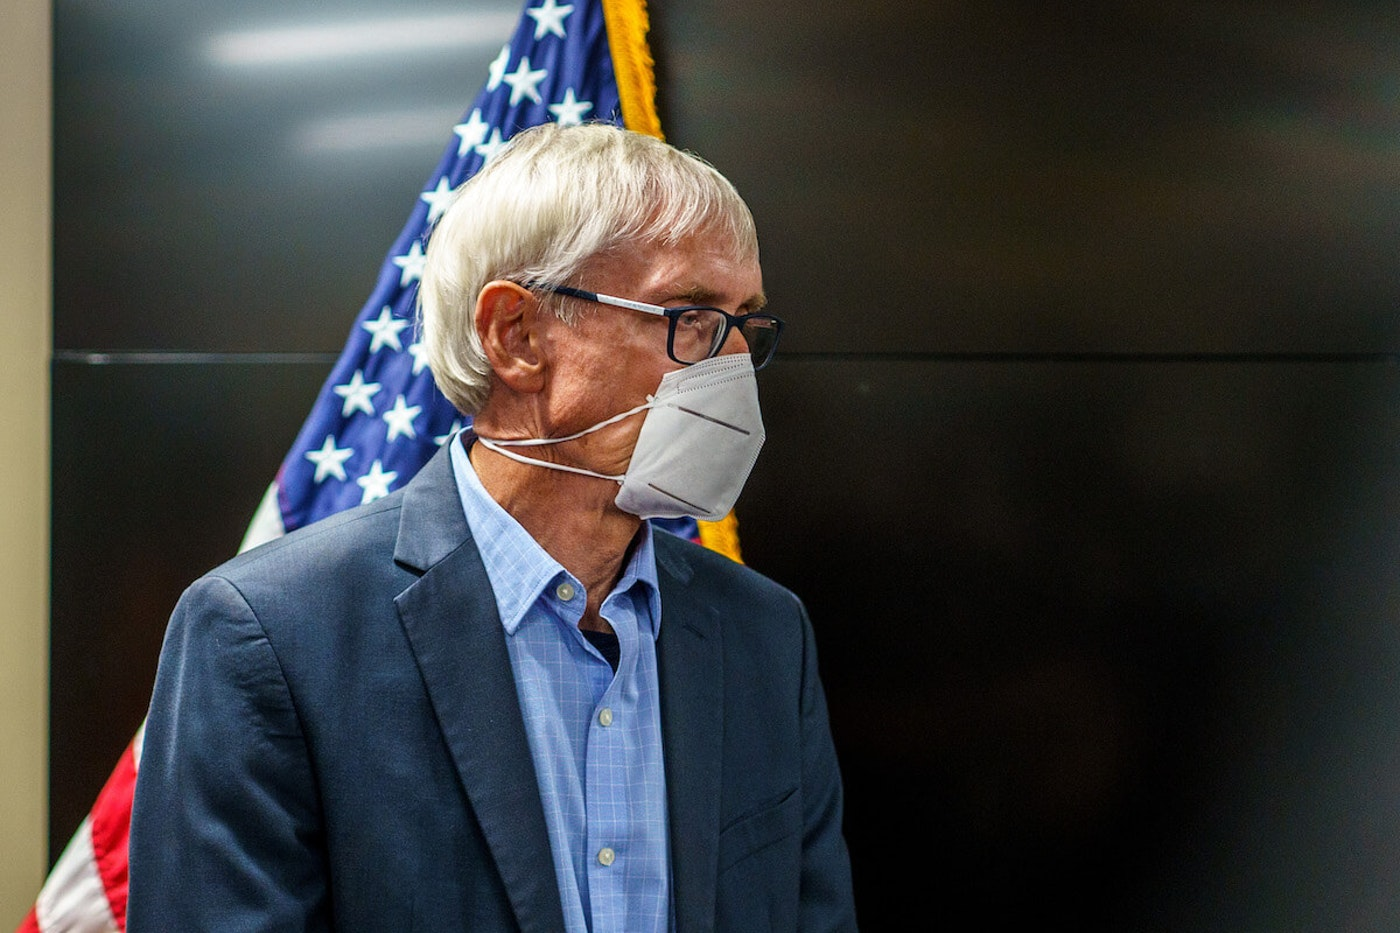 Wisconsin Governor Tony Evers (Photo by KEREM YUCEL/AFP via Getty Images)